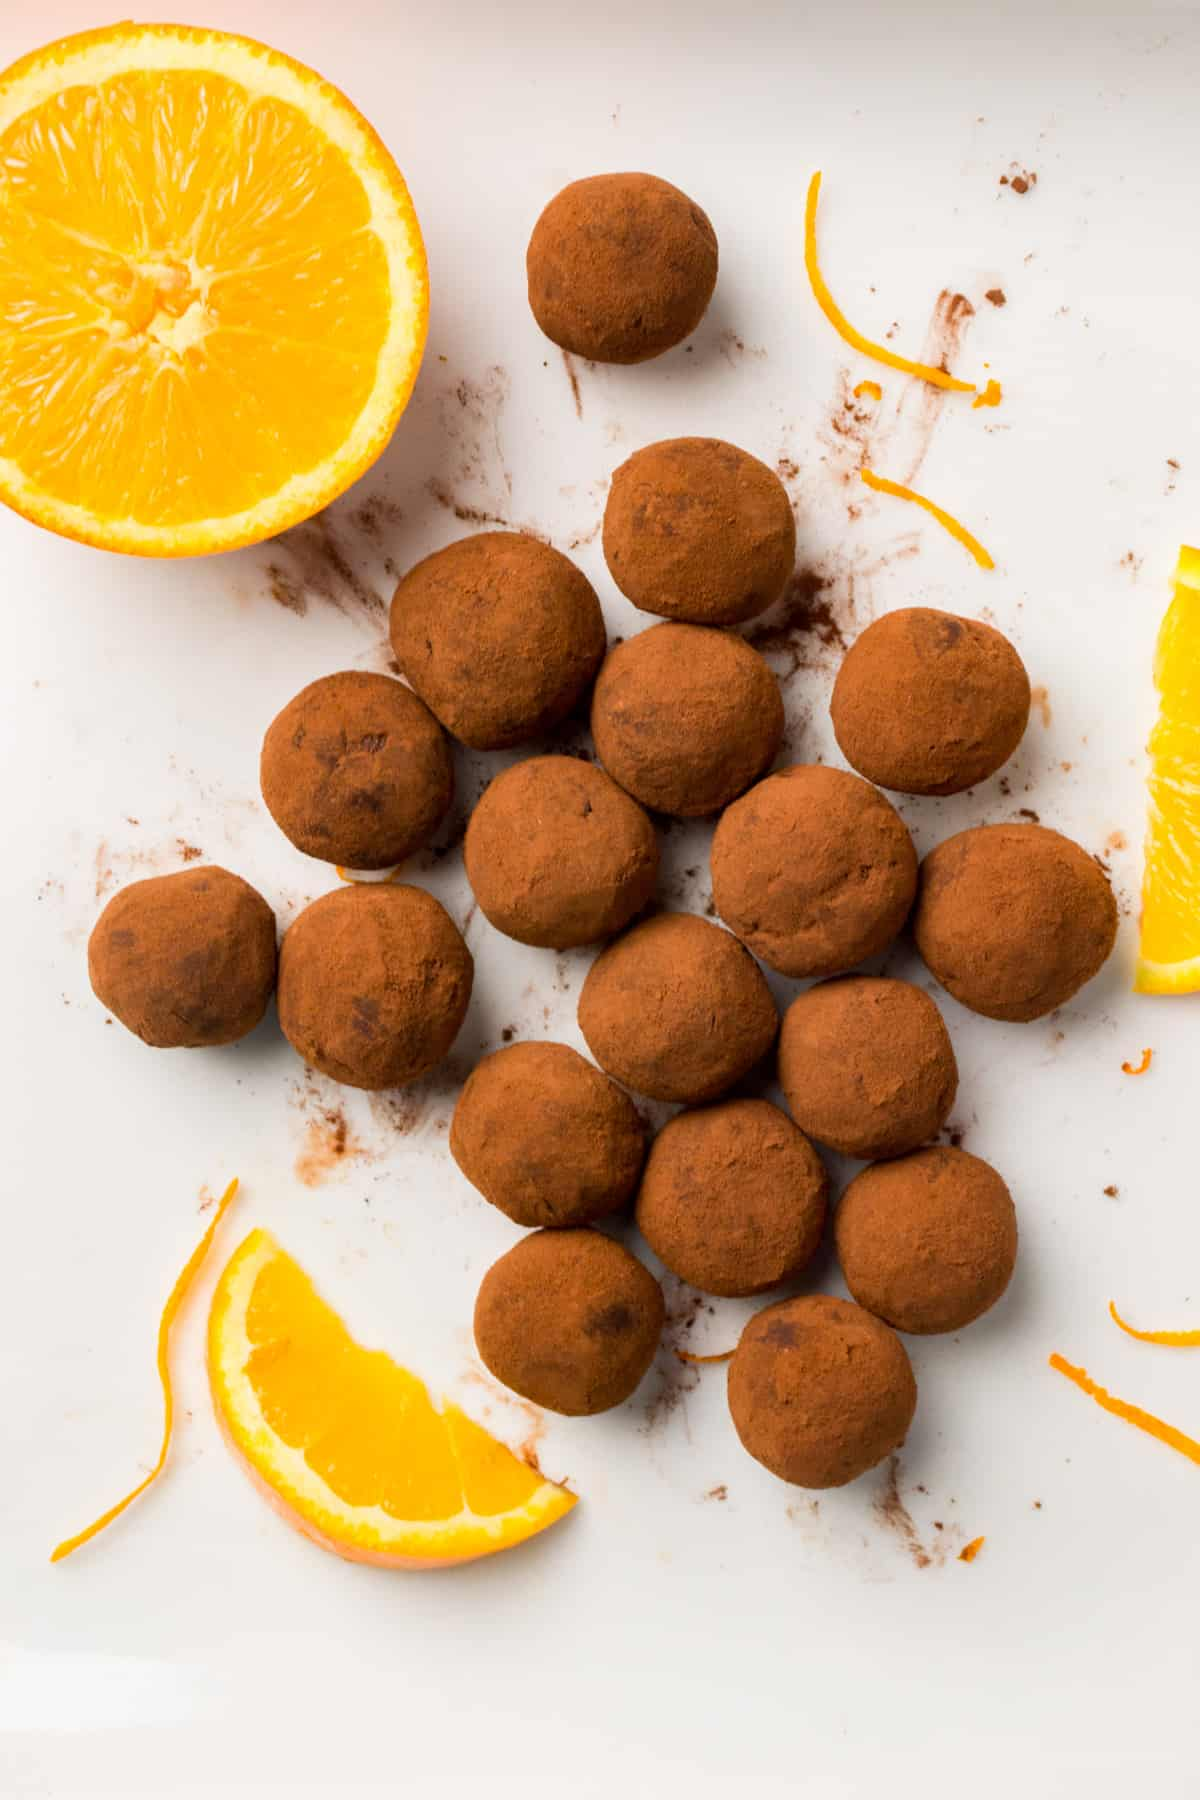 An abstract composition of truffles, oranges slices and zest on a white surface.